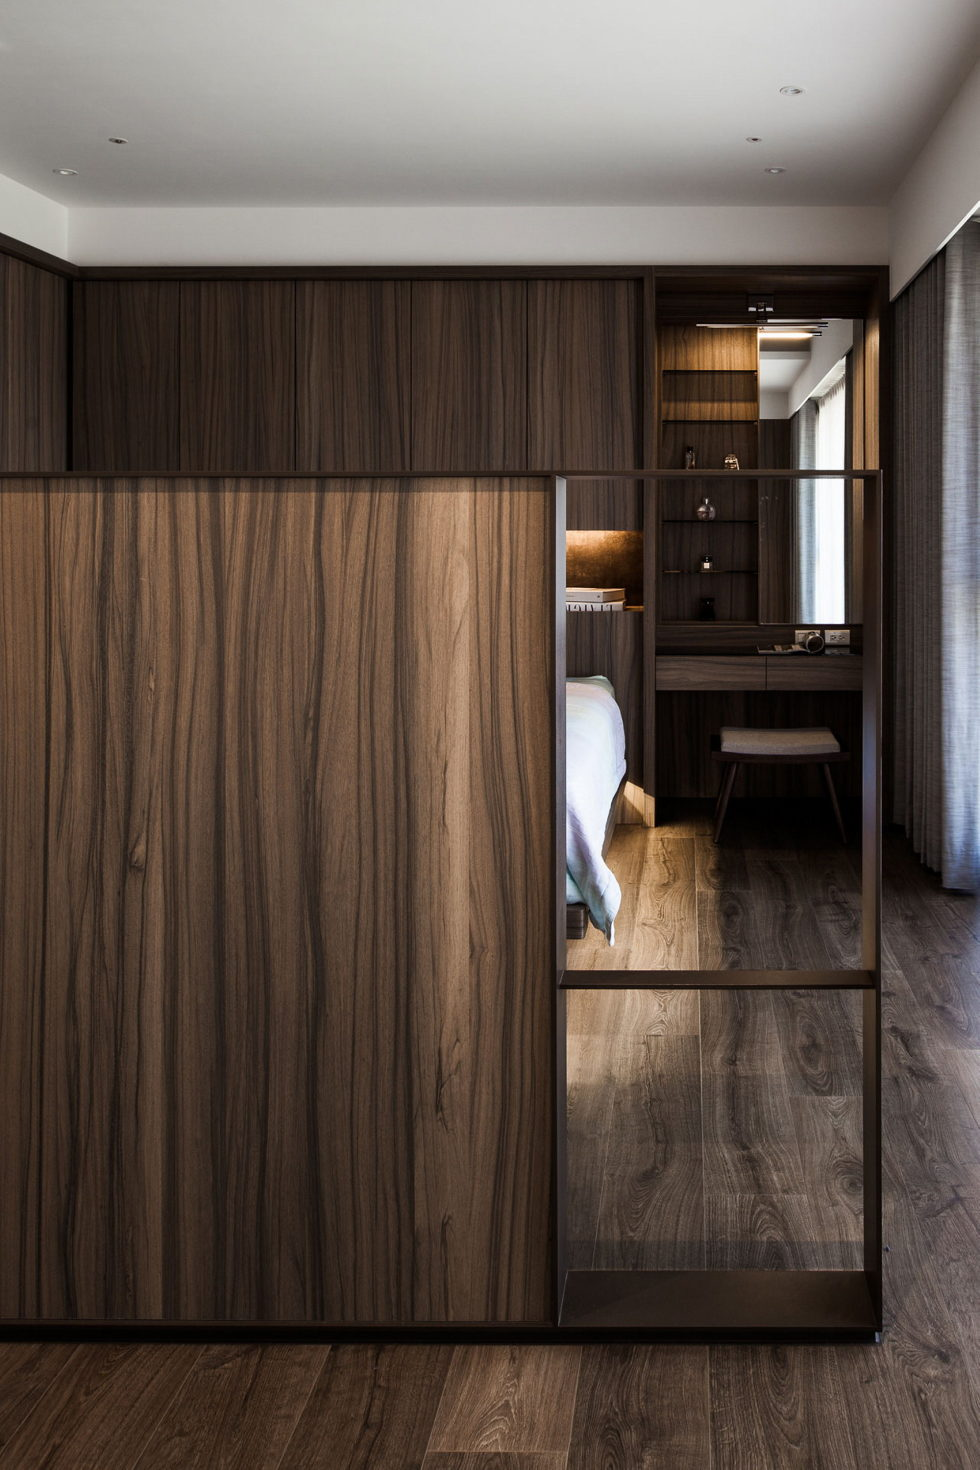 Modern Apartments In The Minimalism Style At Taiwan 20